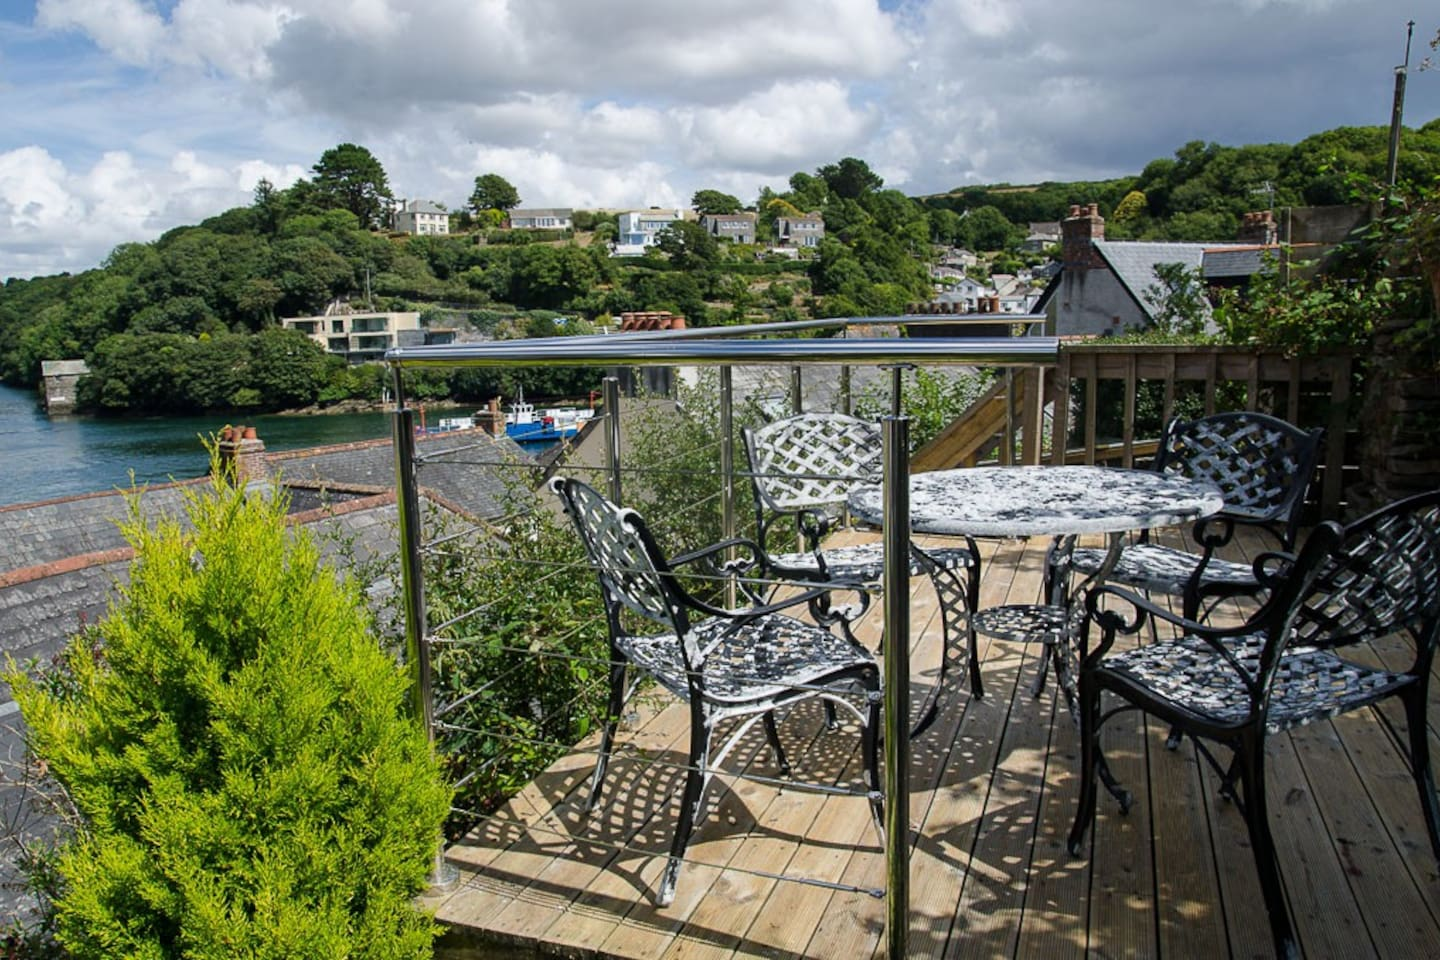 River Fowey views from the patio